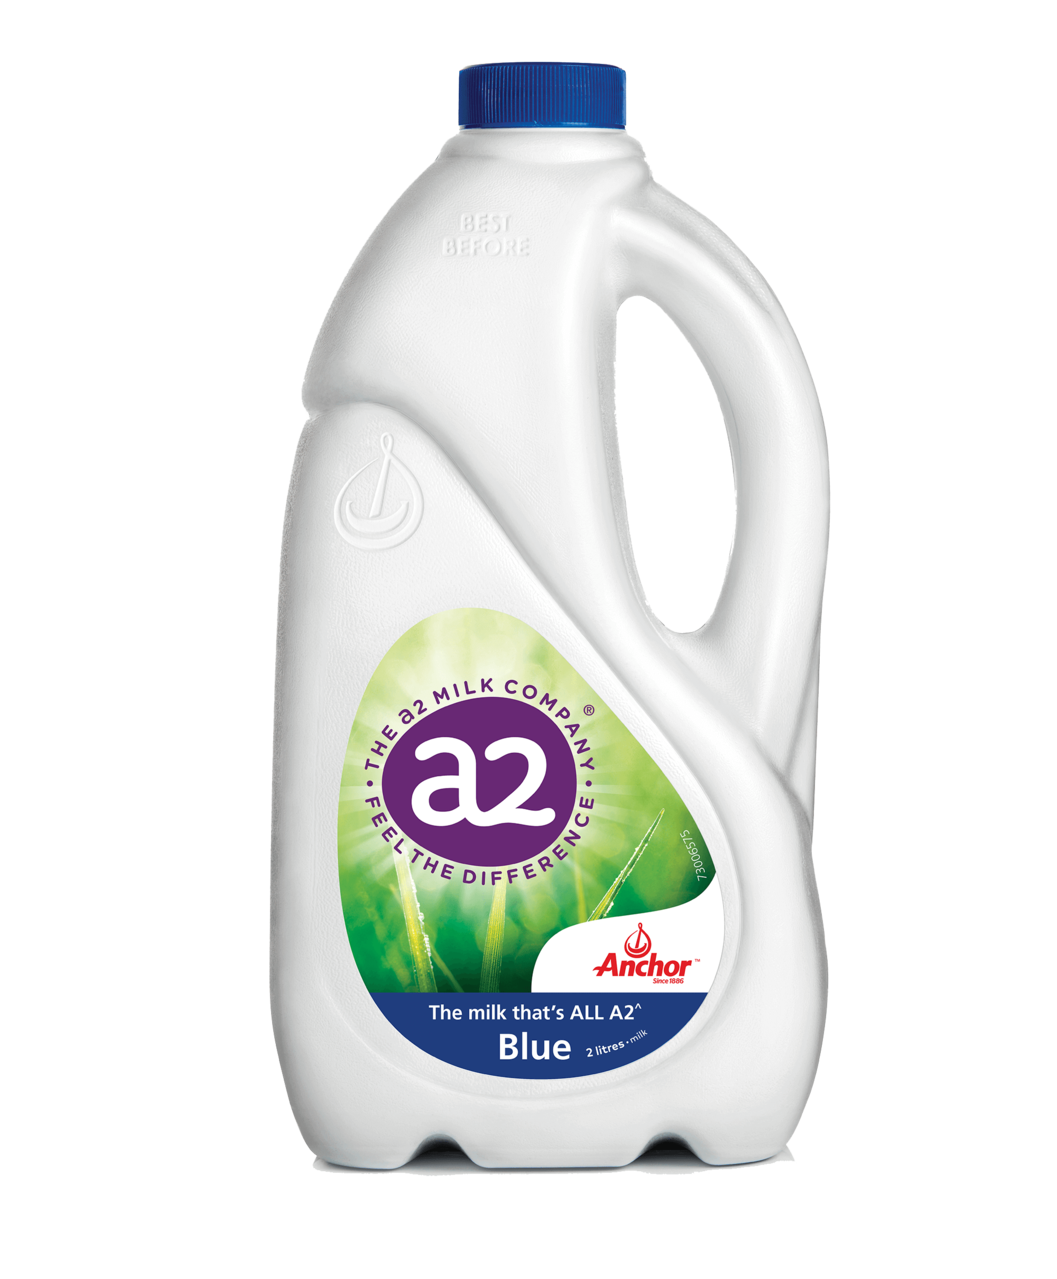 Anchor Blue Top Milk 2L bottle